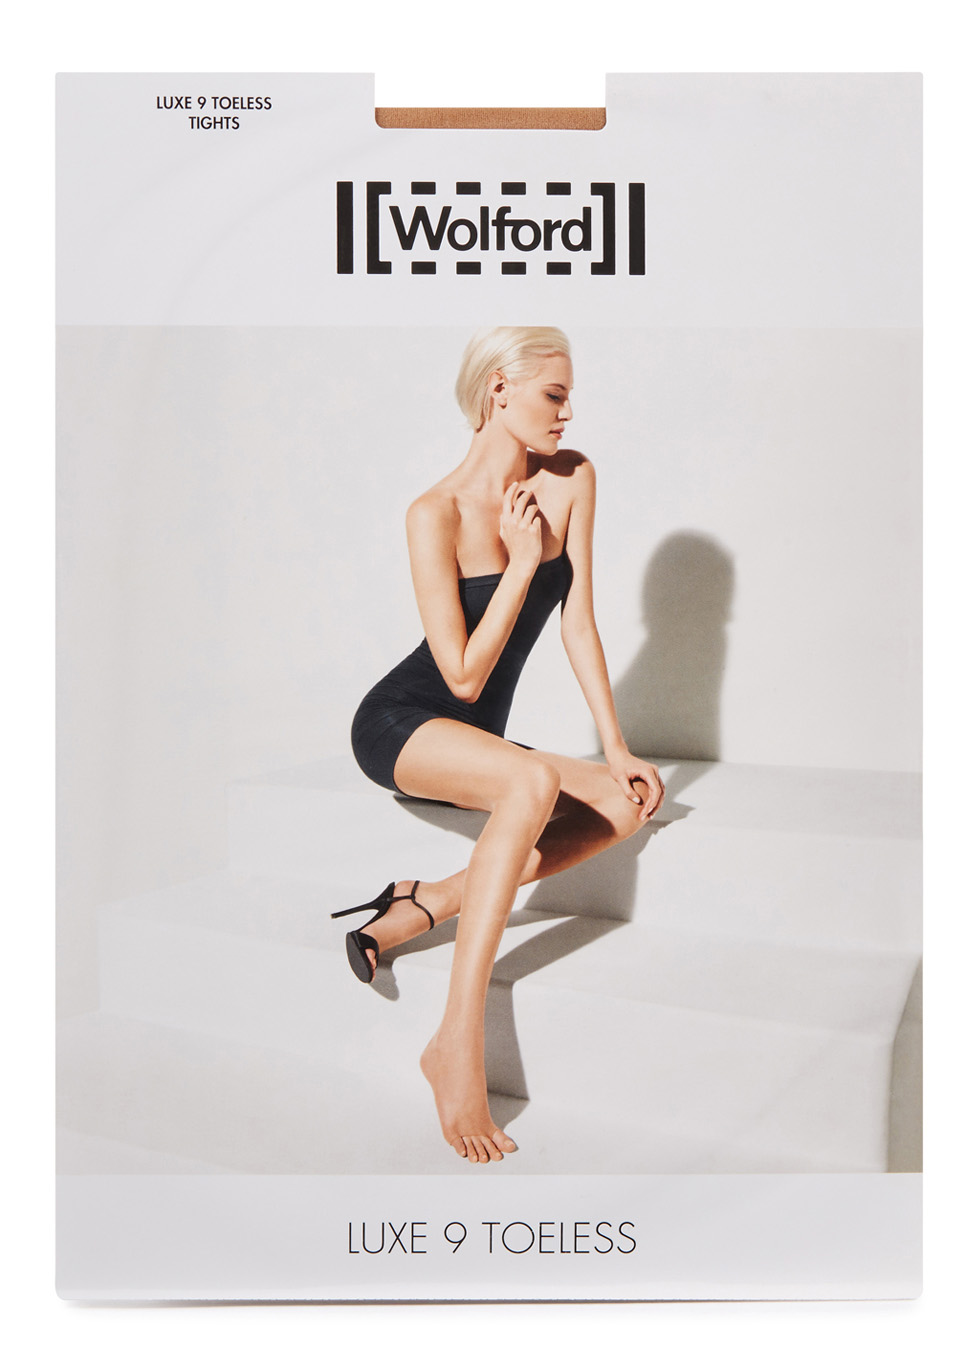 Luxe gobi 9 denier toeless tights - Wolford